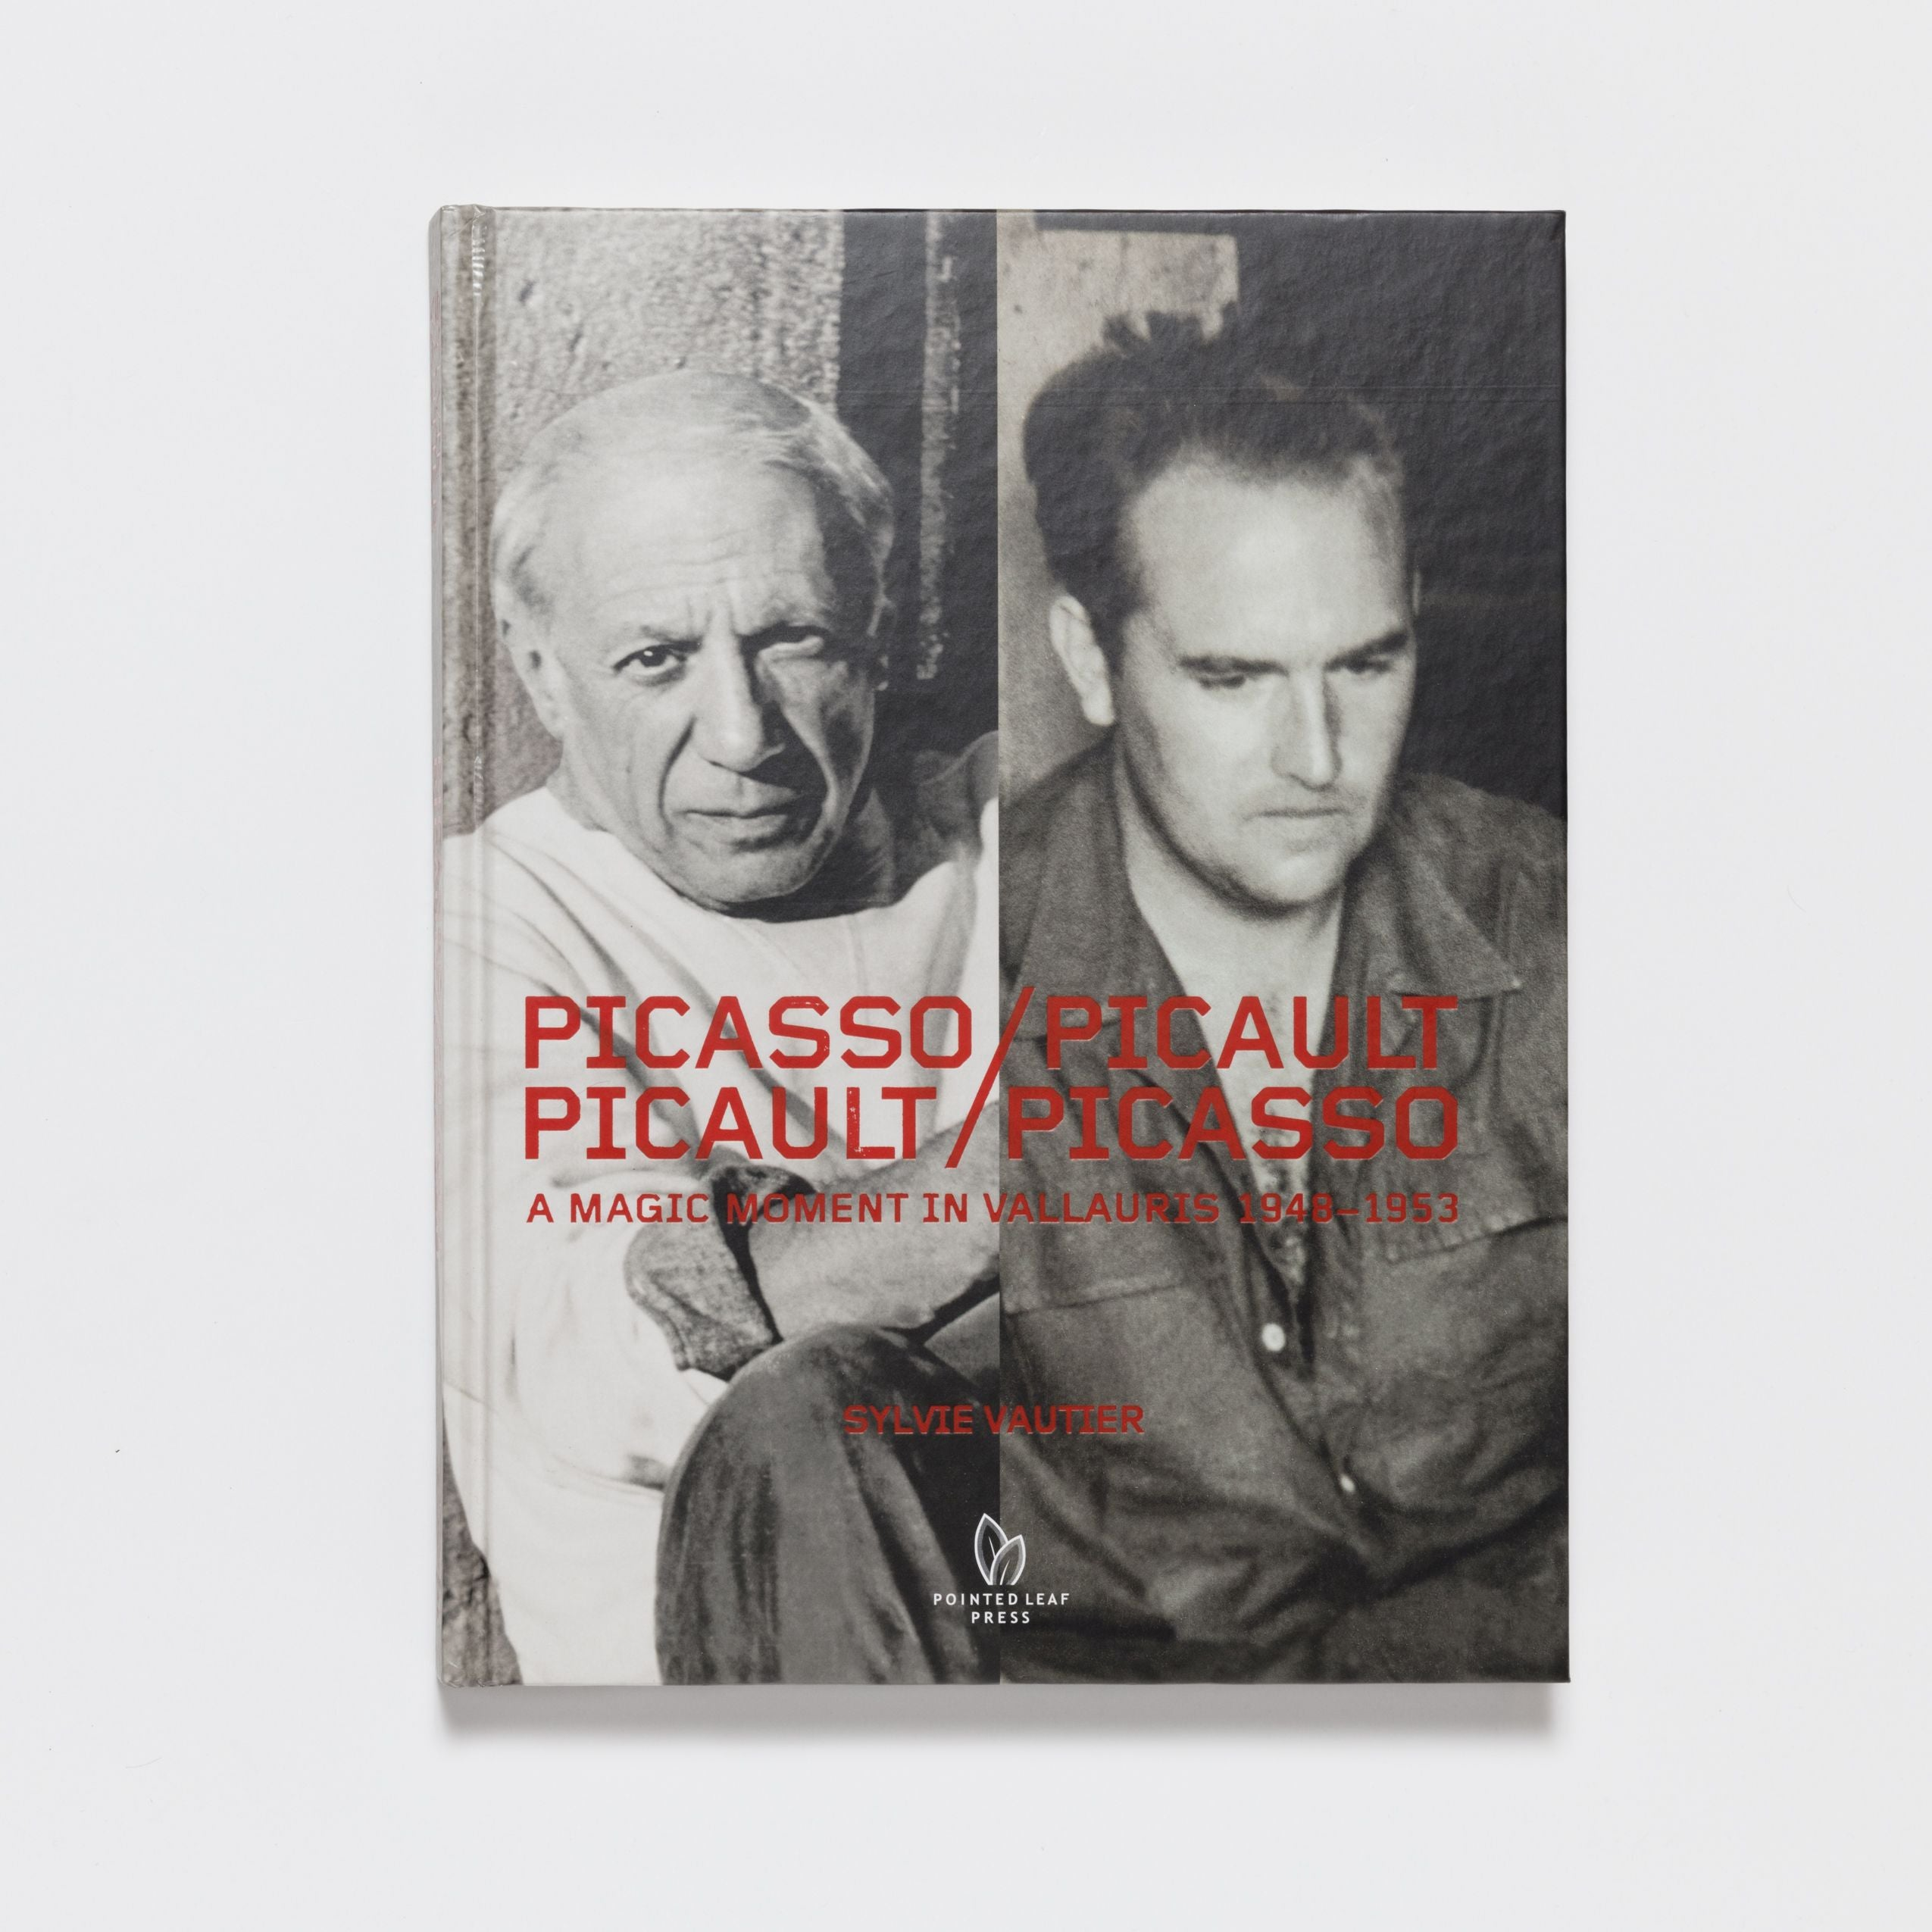 Picasso/Picault, Picault/Picasso: A Magic Moment in Vallauris 1948-1953 by Sylvie Vautier